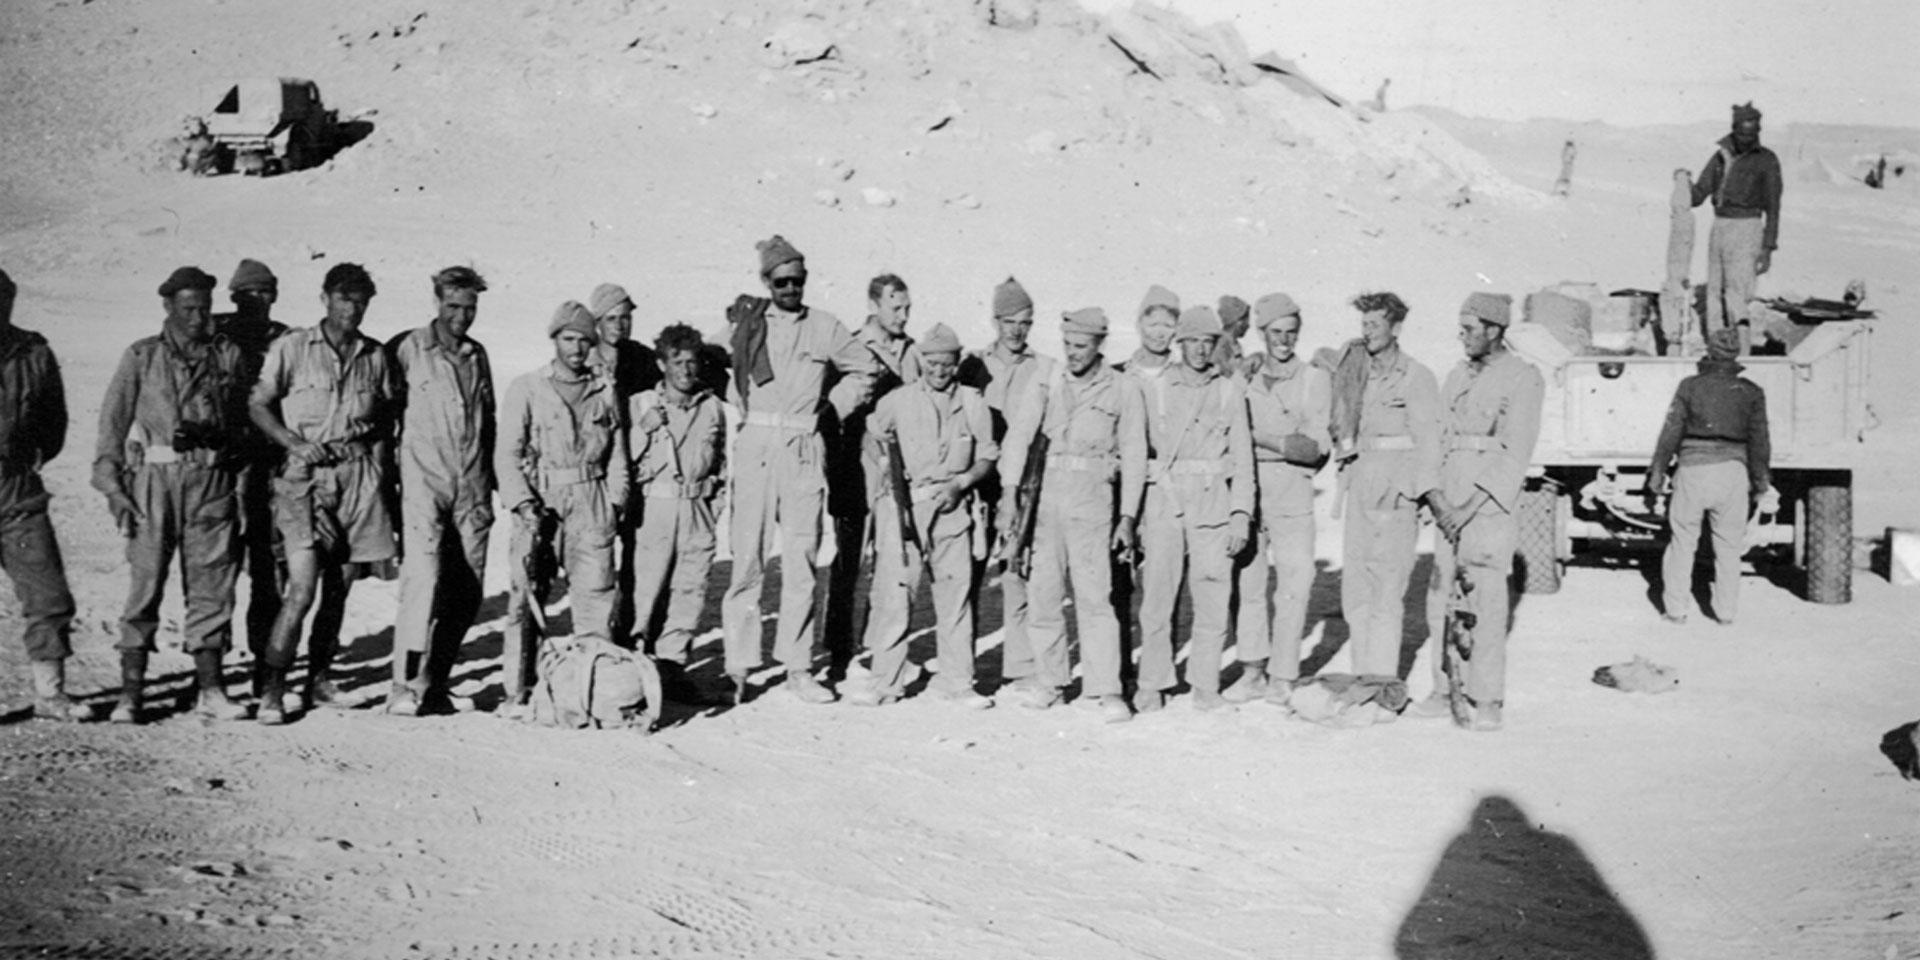 SAS survivors of Operation Squatter, November 1941